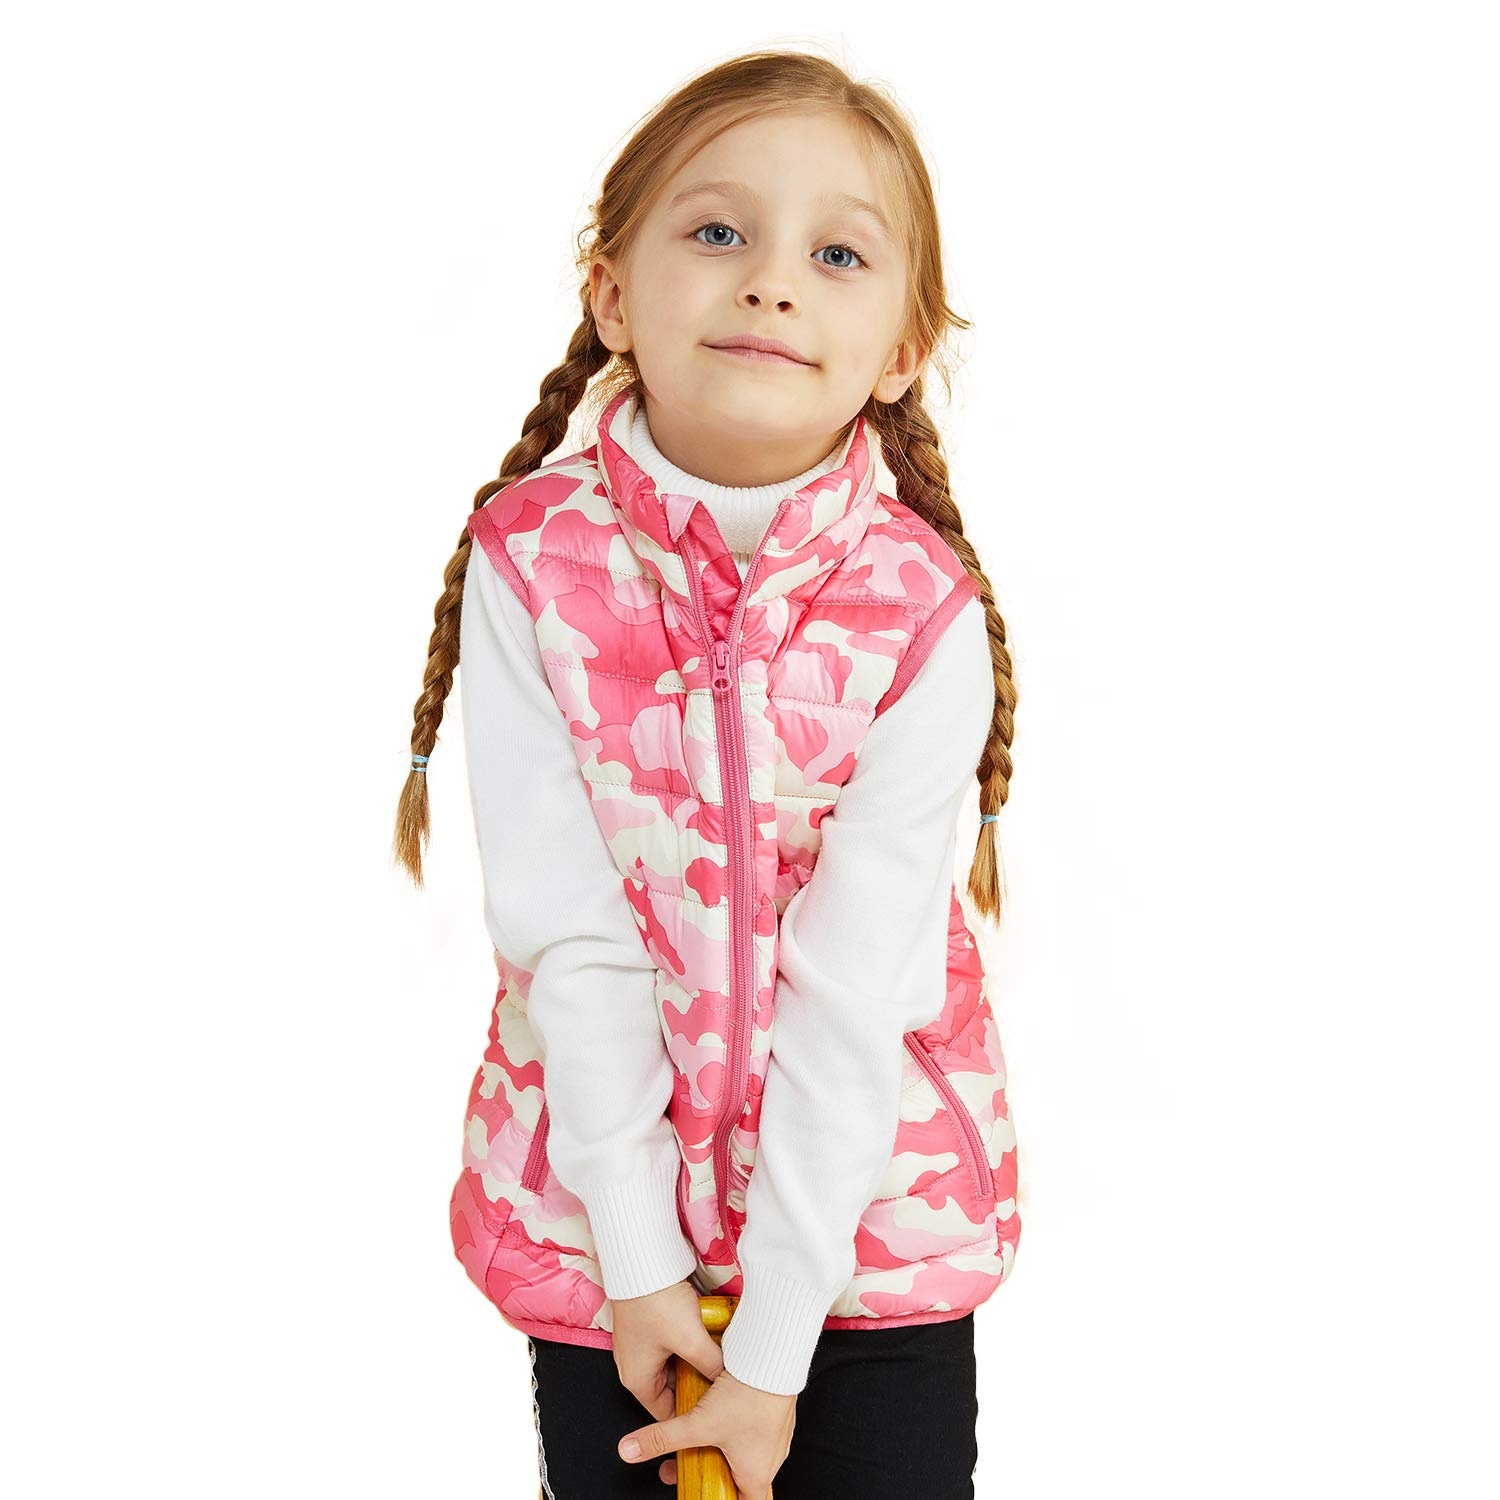 BOSIDENG Kids' Camo Collar Baby Boy and Girl Comfy Down Vest with Pockets for Winter